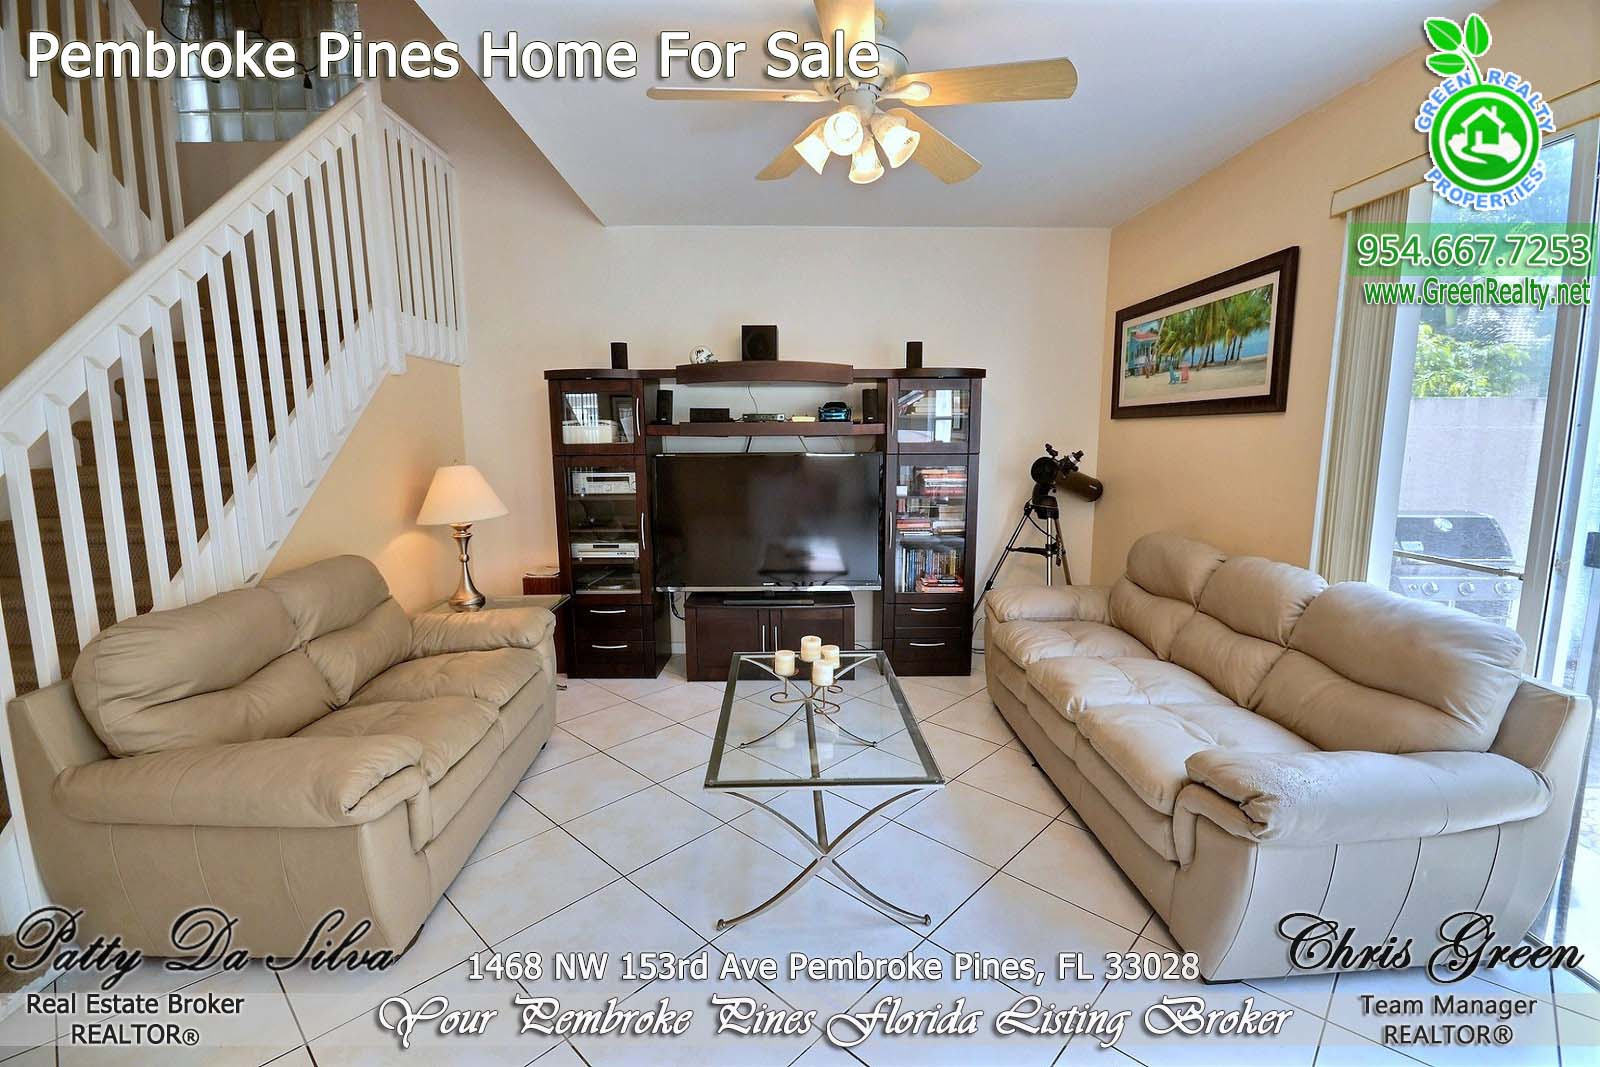 14 Homes For Sale in Pembroke Pines (3)